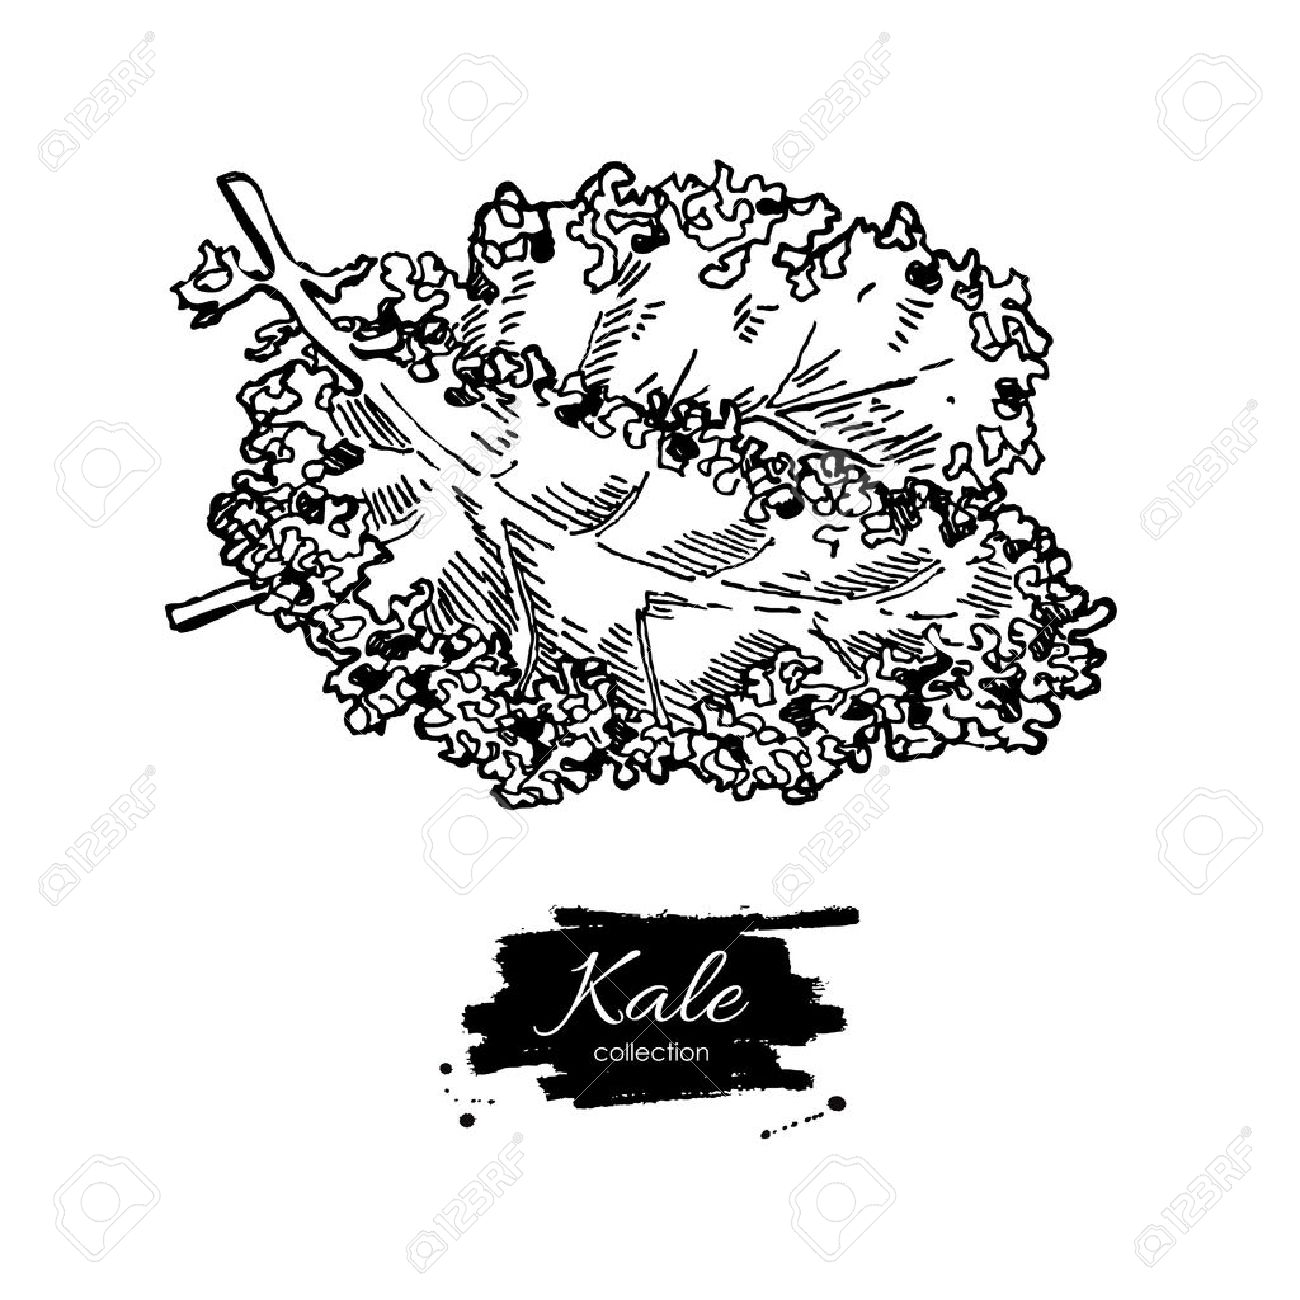 Kale hand drawn vector. Vegetable engraved style illustration. Isolated Kale. Detailed vegetarian food drawing. Farm market product. - 58613417